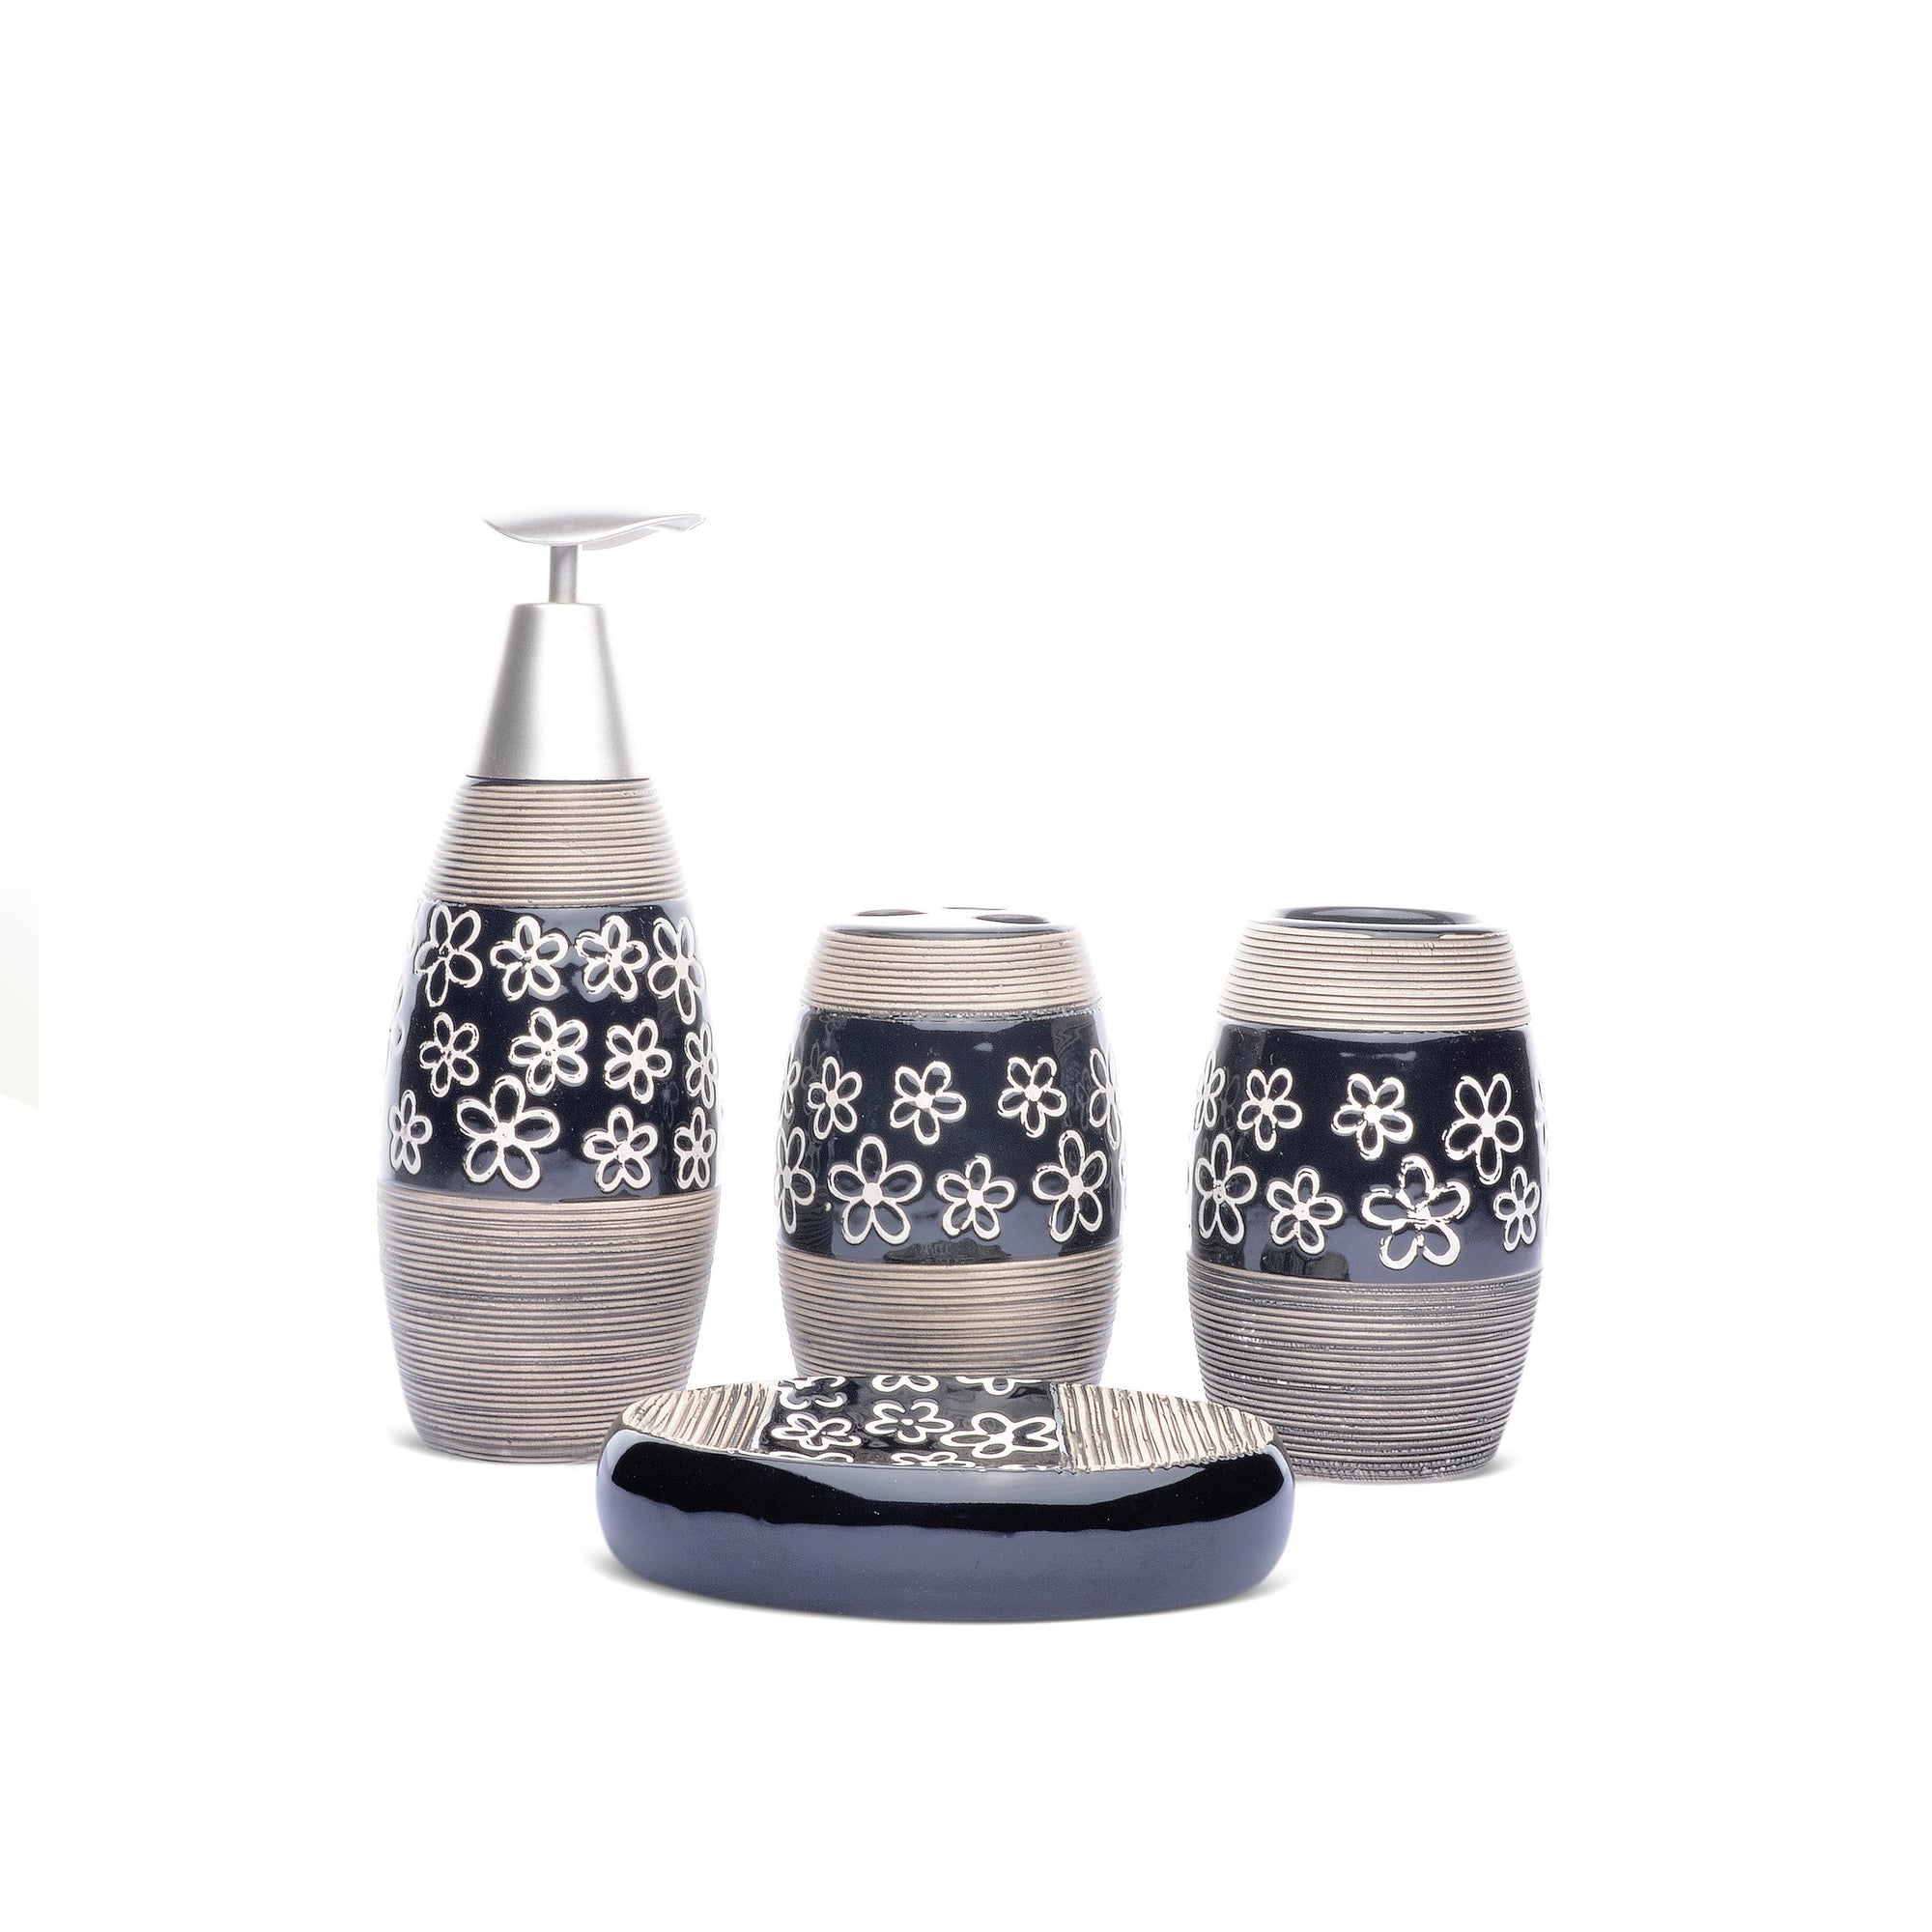 Floral Design Bathroom Set (Black)